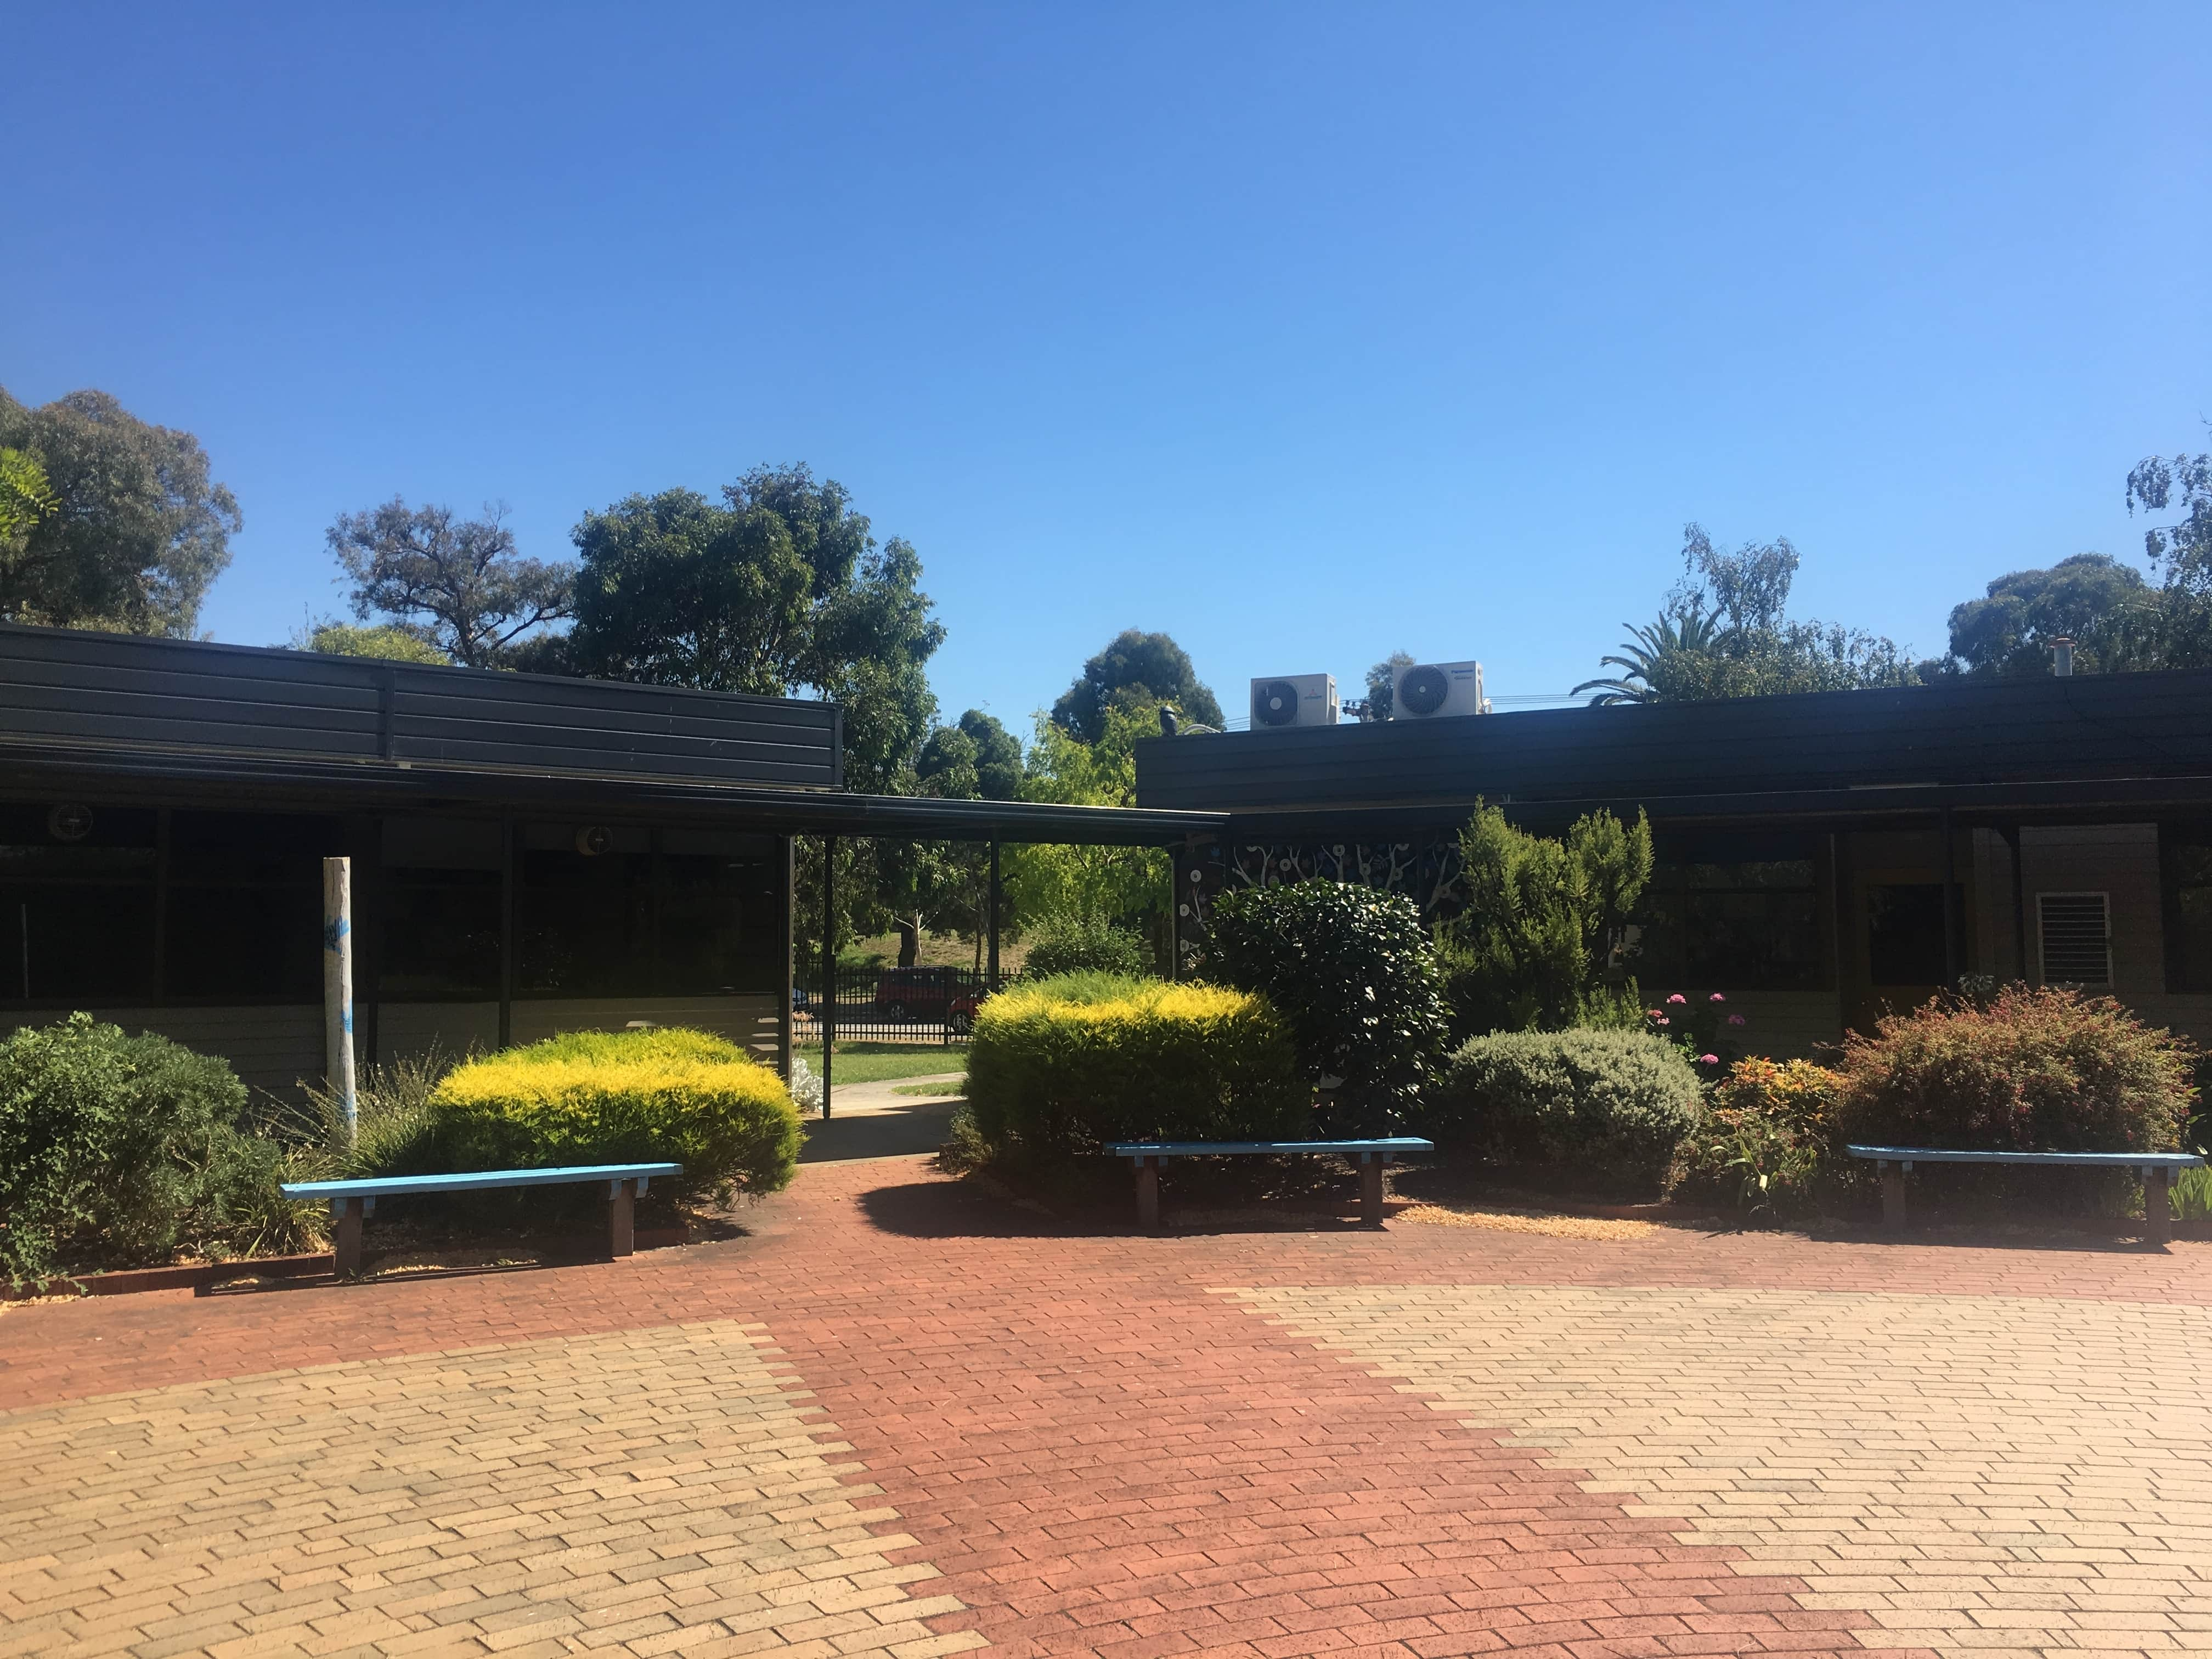 Caulfield Park Community Campus